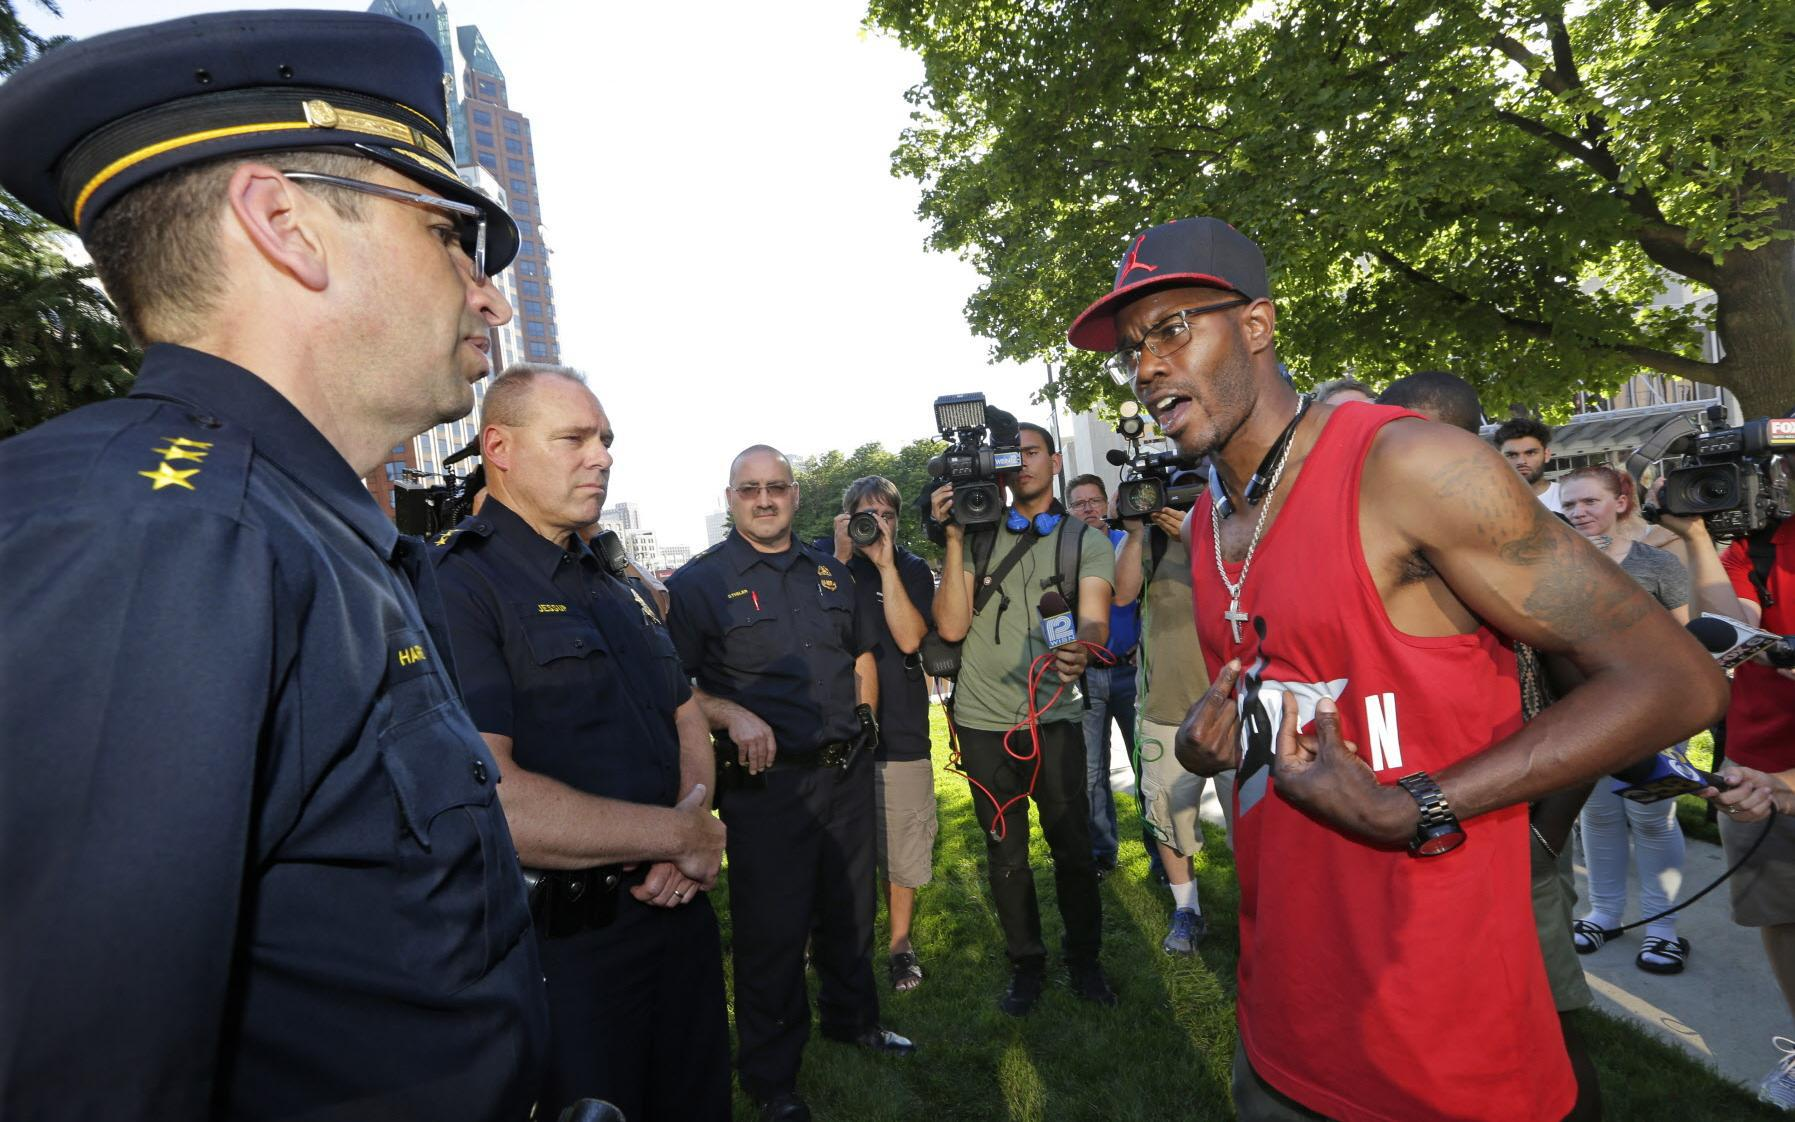 Nate Hamilton, the brother of Dontre Hamilton, who was killed by a Milwaukee police officer, talks with Milwaukee police during a Black Lives Matter rally in July 2016. (Milwaukee Journal Sentinel/Mike De Sisti)